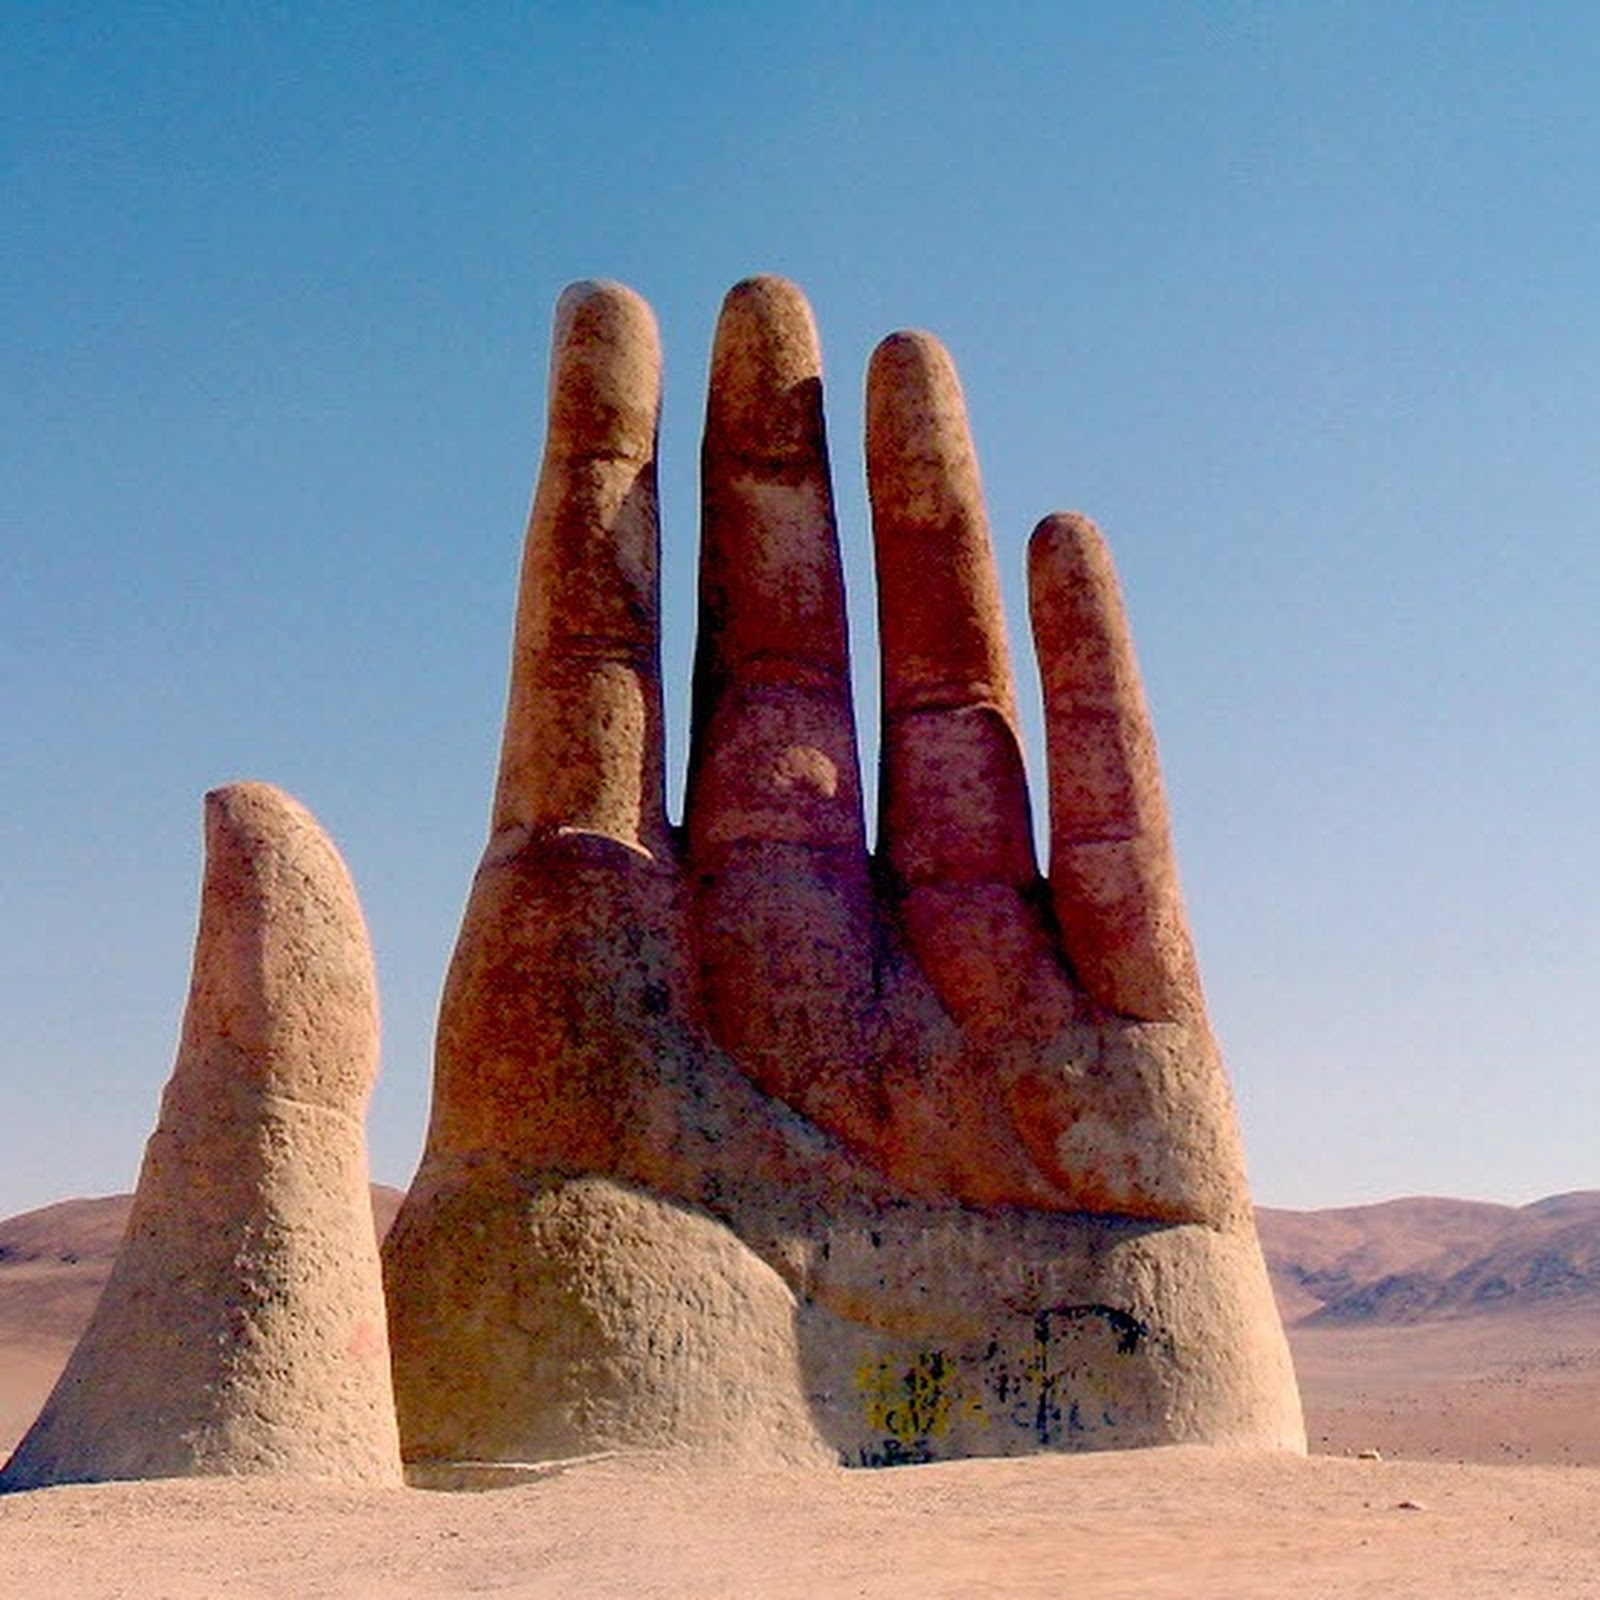 Giant Hand Sculptures Around The World